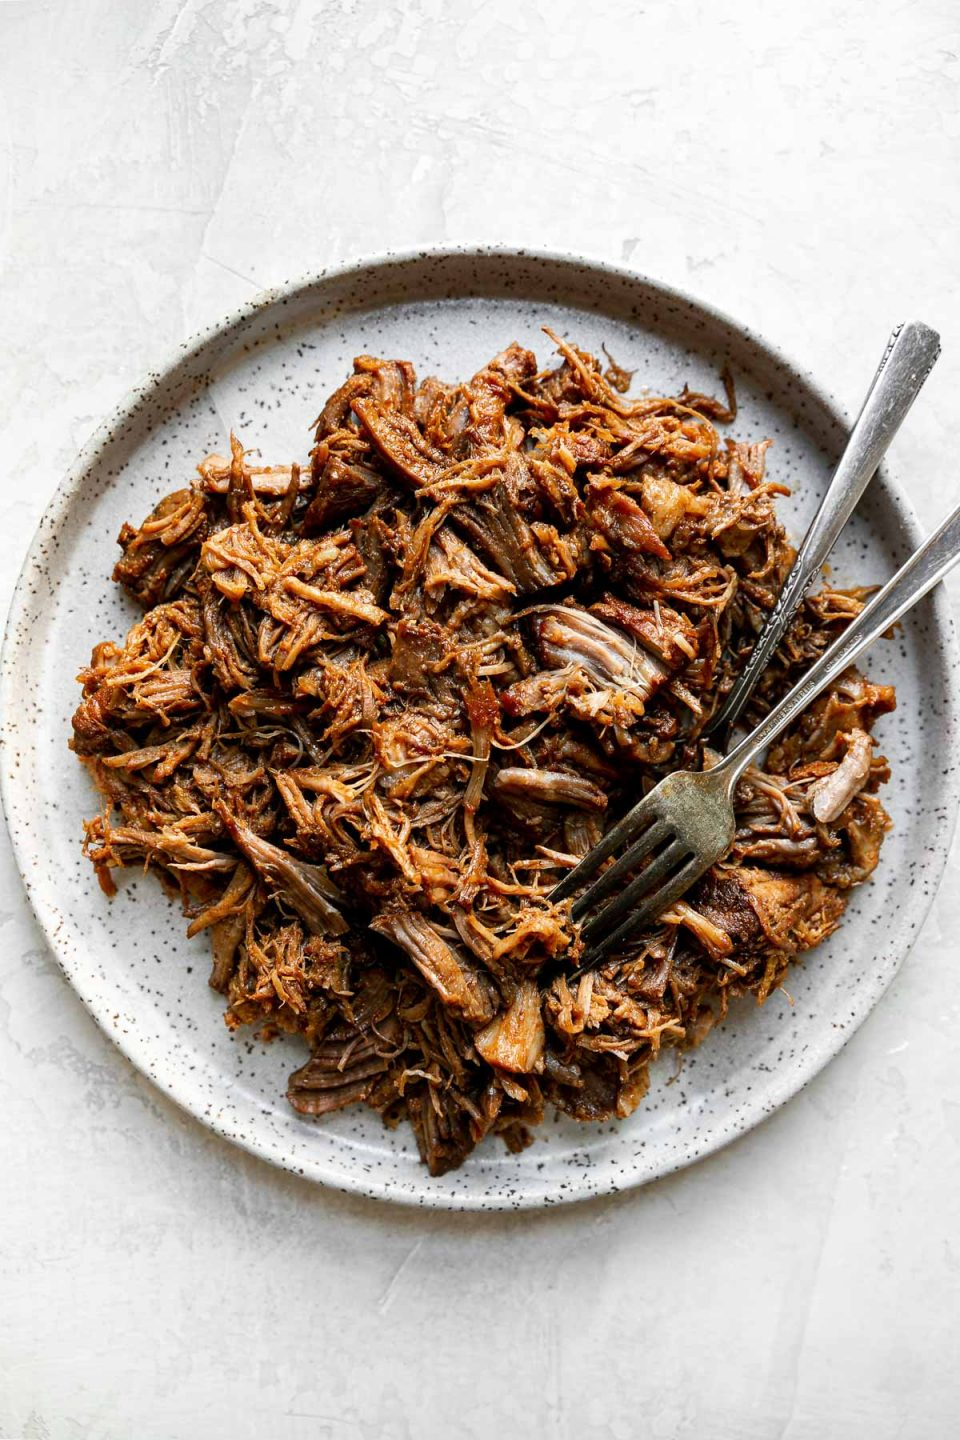 Shredded pork shown on a speckled ceramic plate, with 2 forks. The plate sits atop a creamy cement surface.